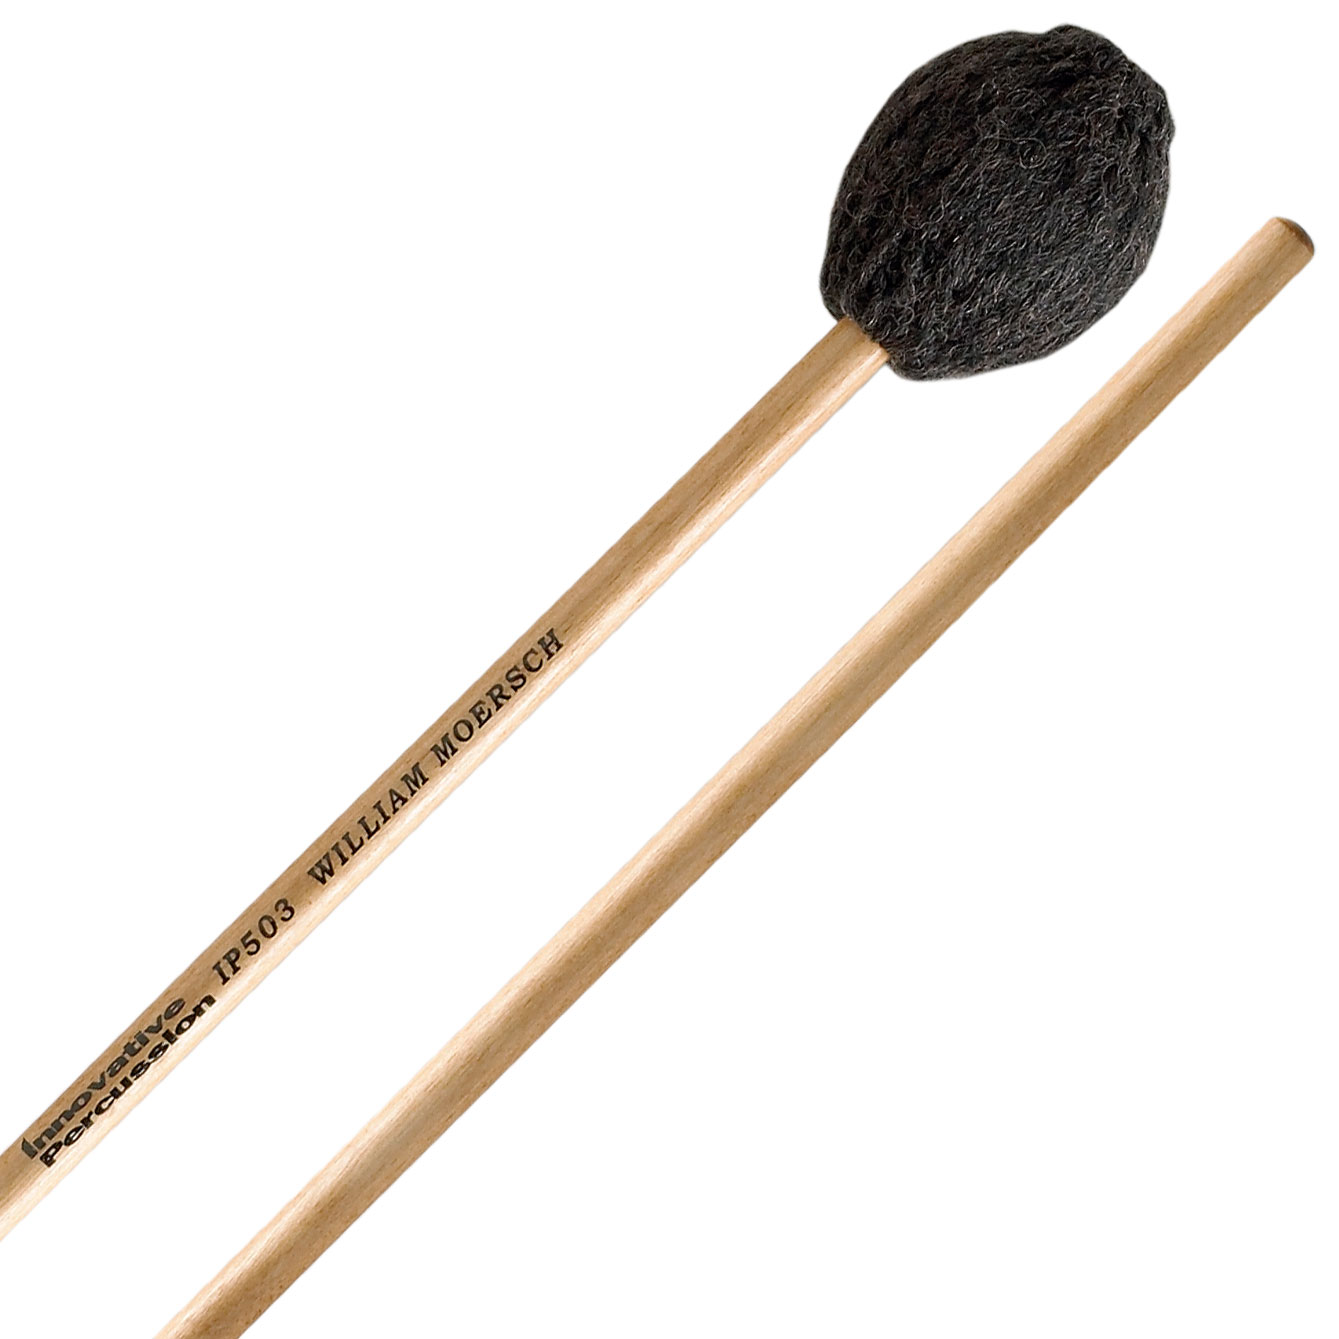 Innovative Percussion William Moersch Signature Medium Hard Marimba Mallets